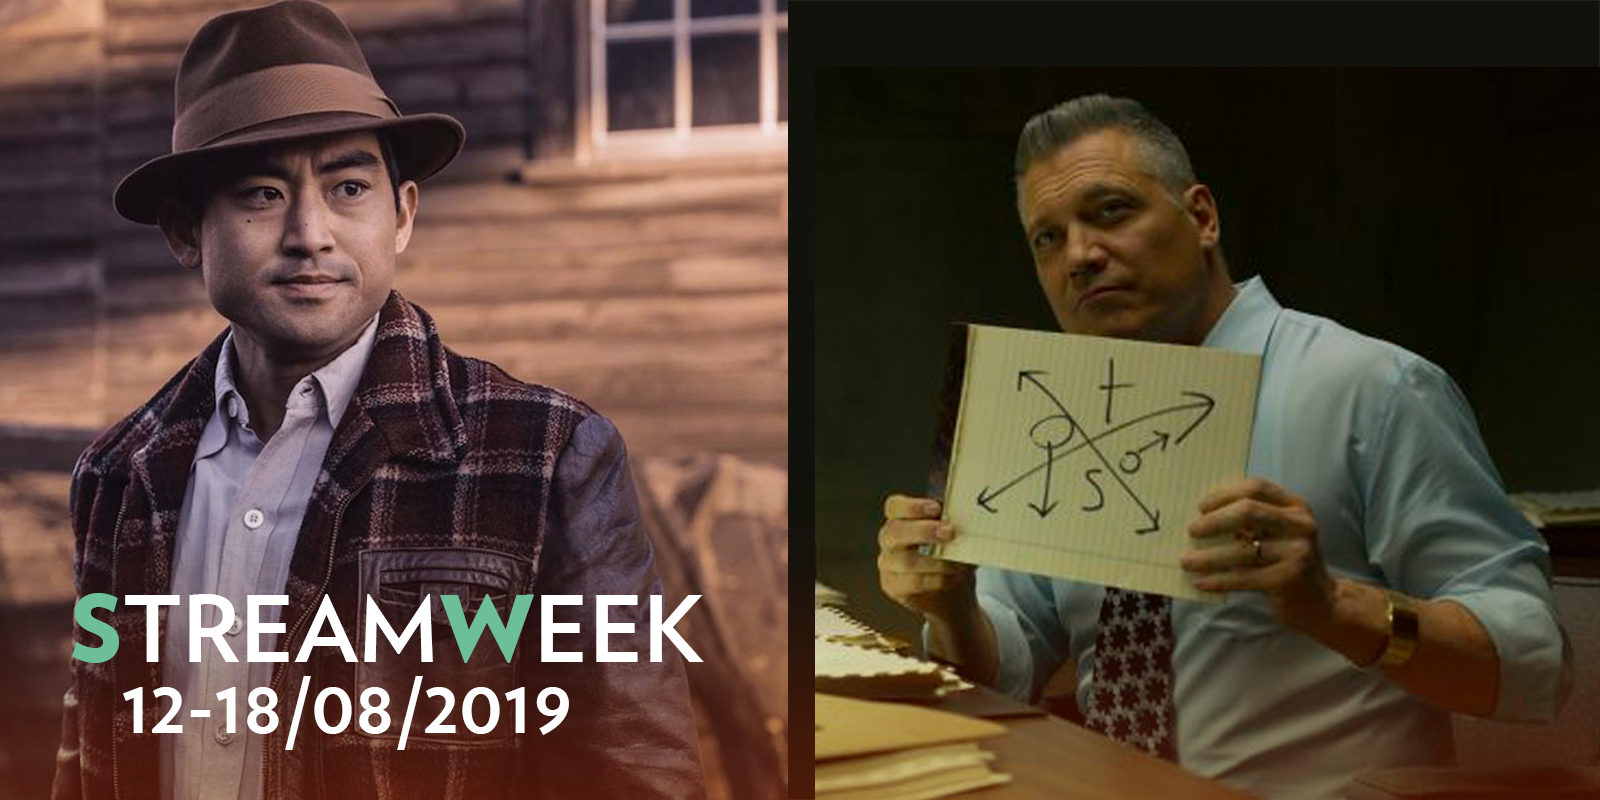 StreamWeek: l'ombra del male si allunga con The Terror e Mindhunter